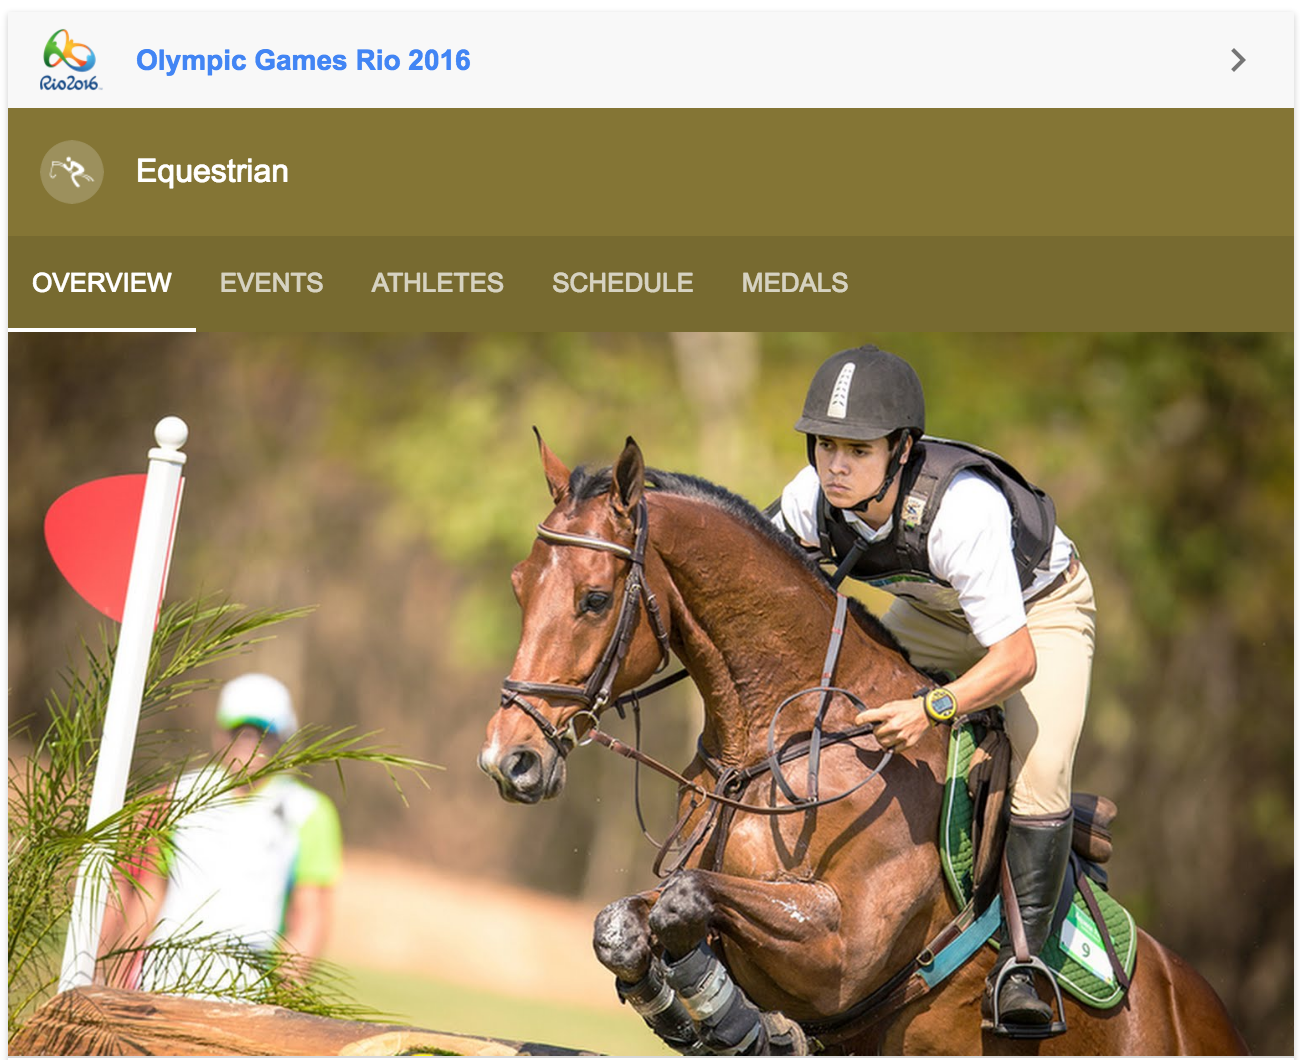 Watch The Rio 2016 Olympics Equestrian Tv Schedule